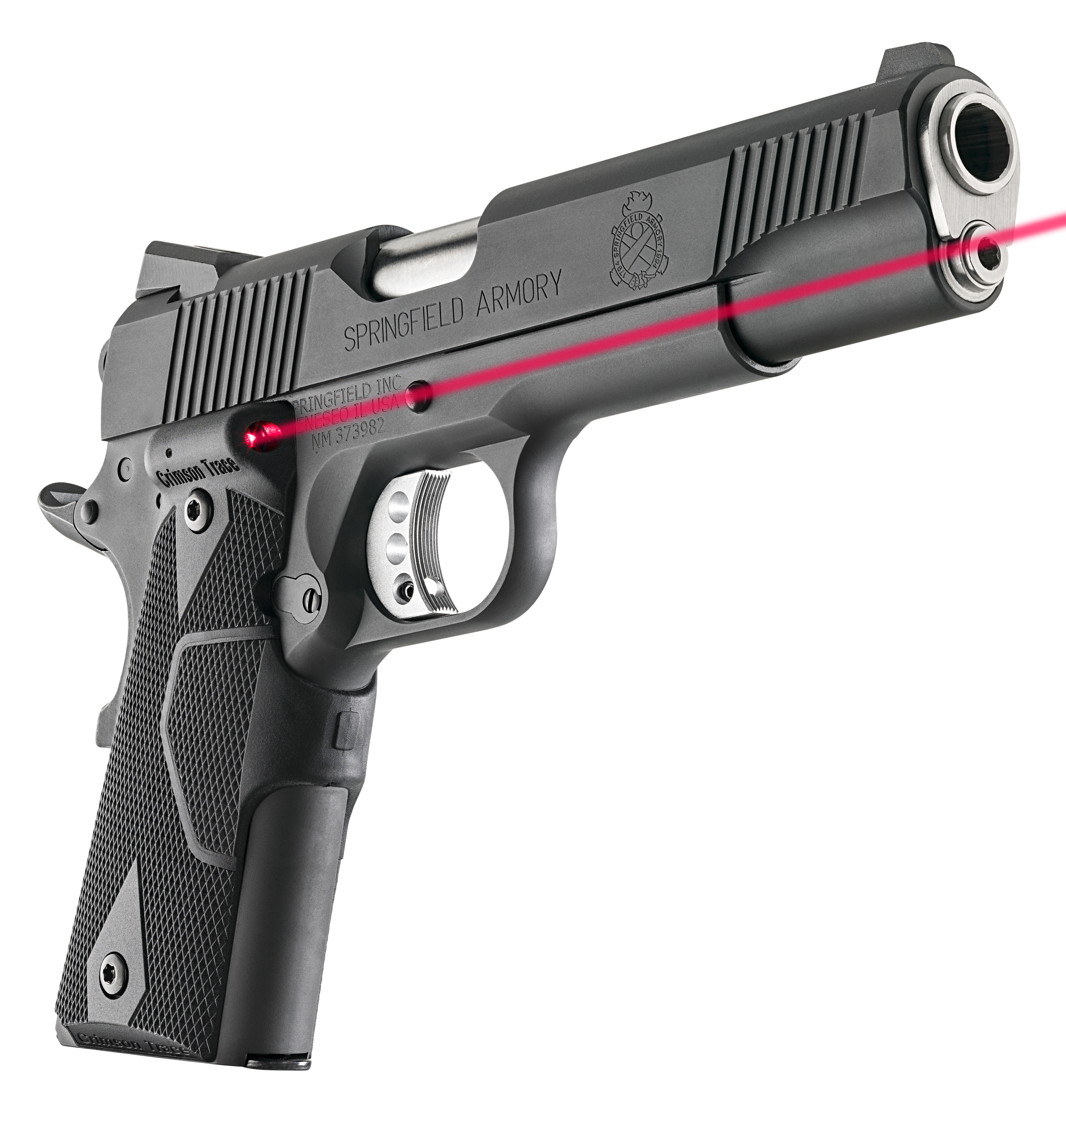 Press Release: Springfield Armory Loaded 1911 With Crimson Trace Grips